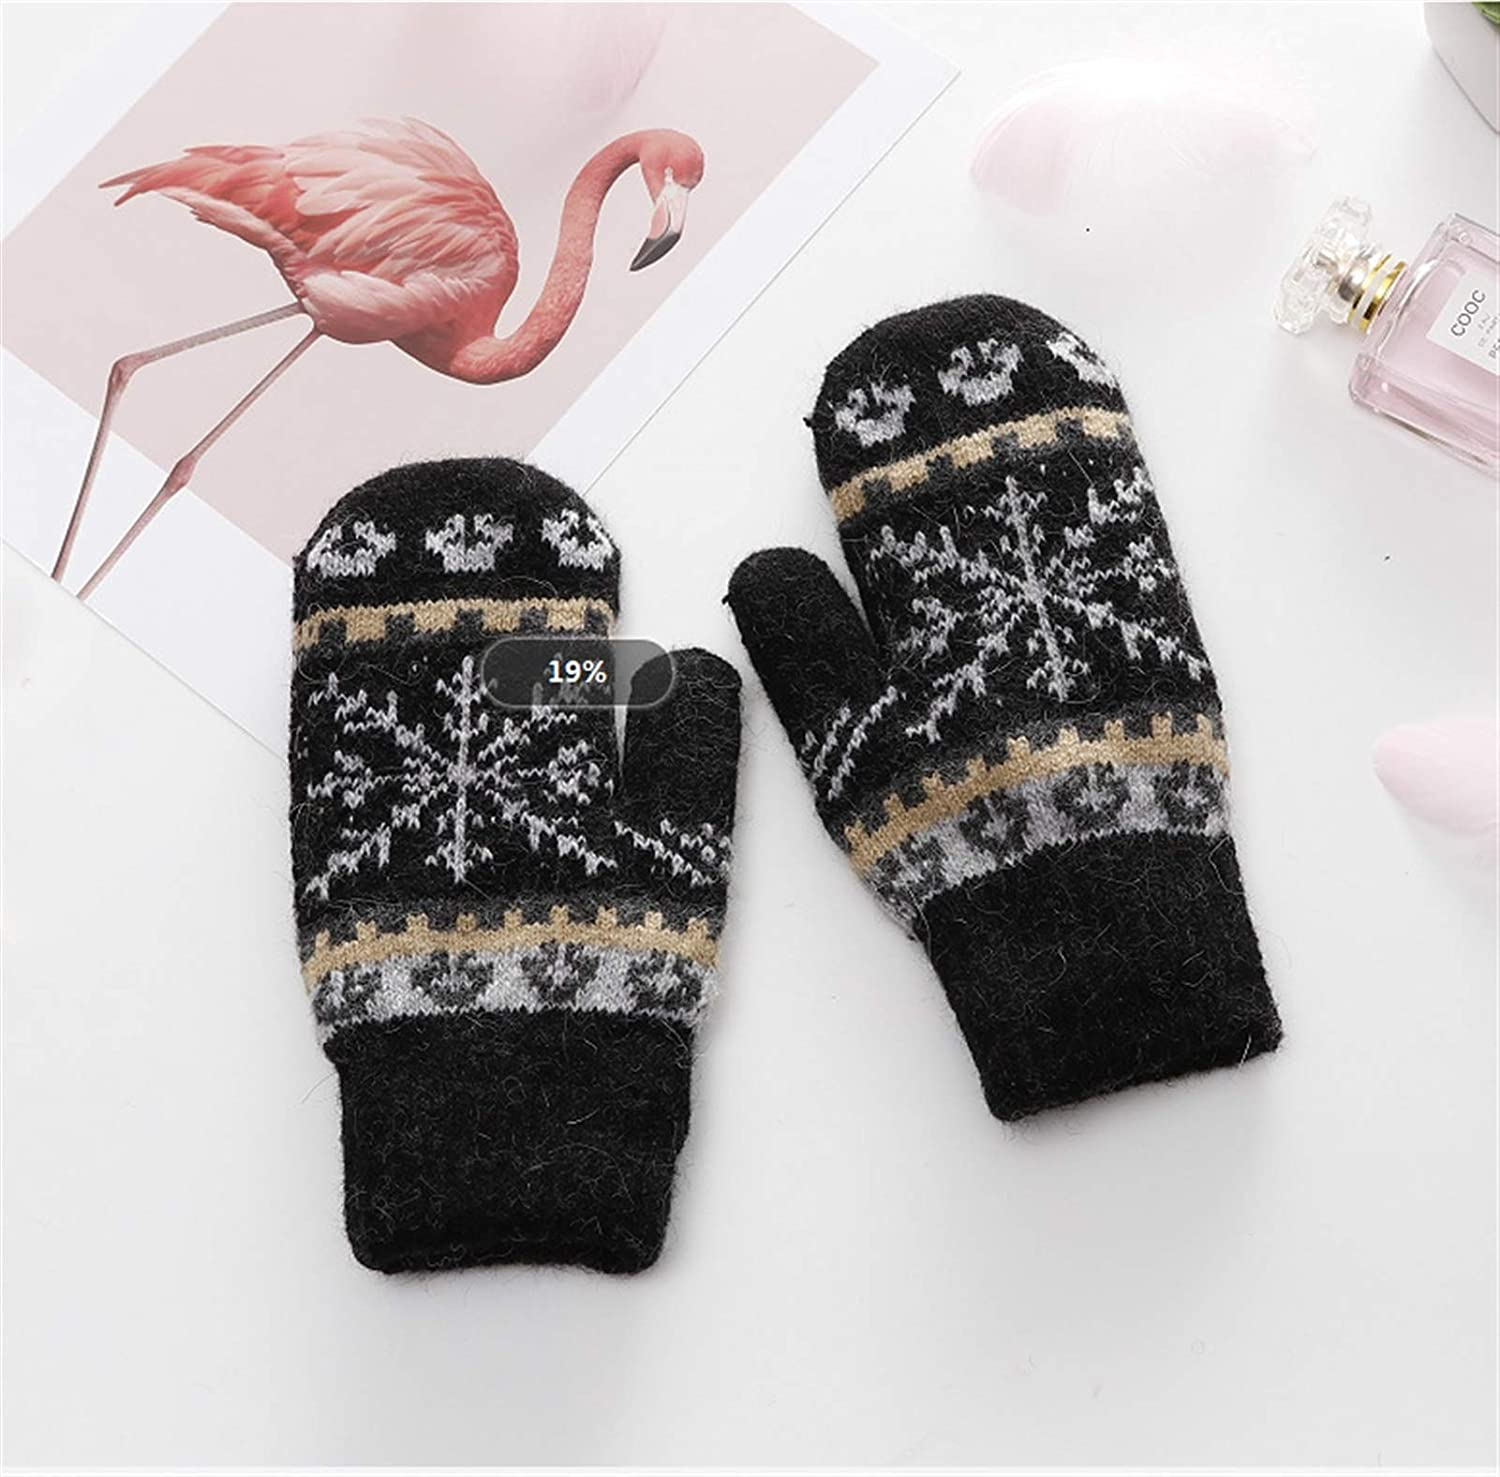 GUYANMAY Gloves Women Gloves Winter Knitted Warm Gloves Delicate Pattern Windproof Gloves Mittens Gloves Heated for Warm (Color : Black, Gloves Size : One Size)